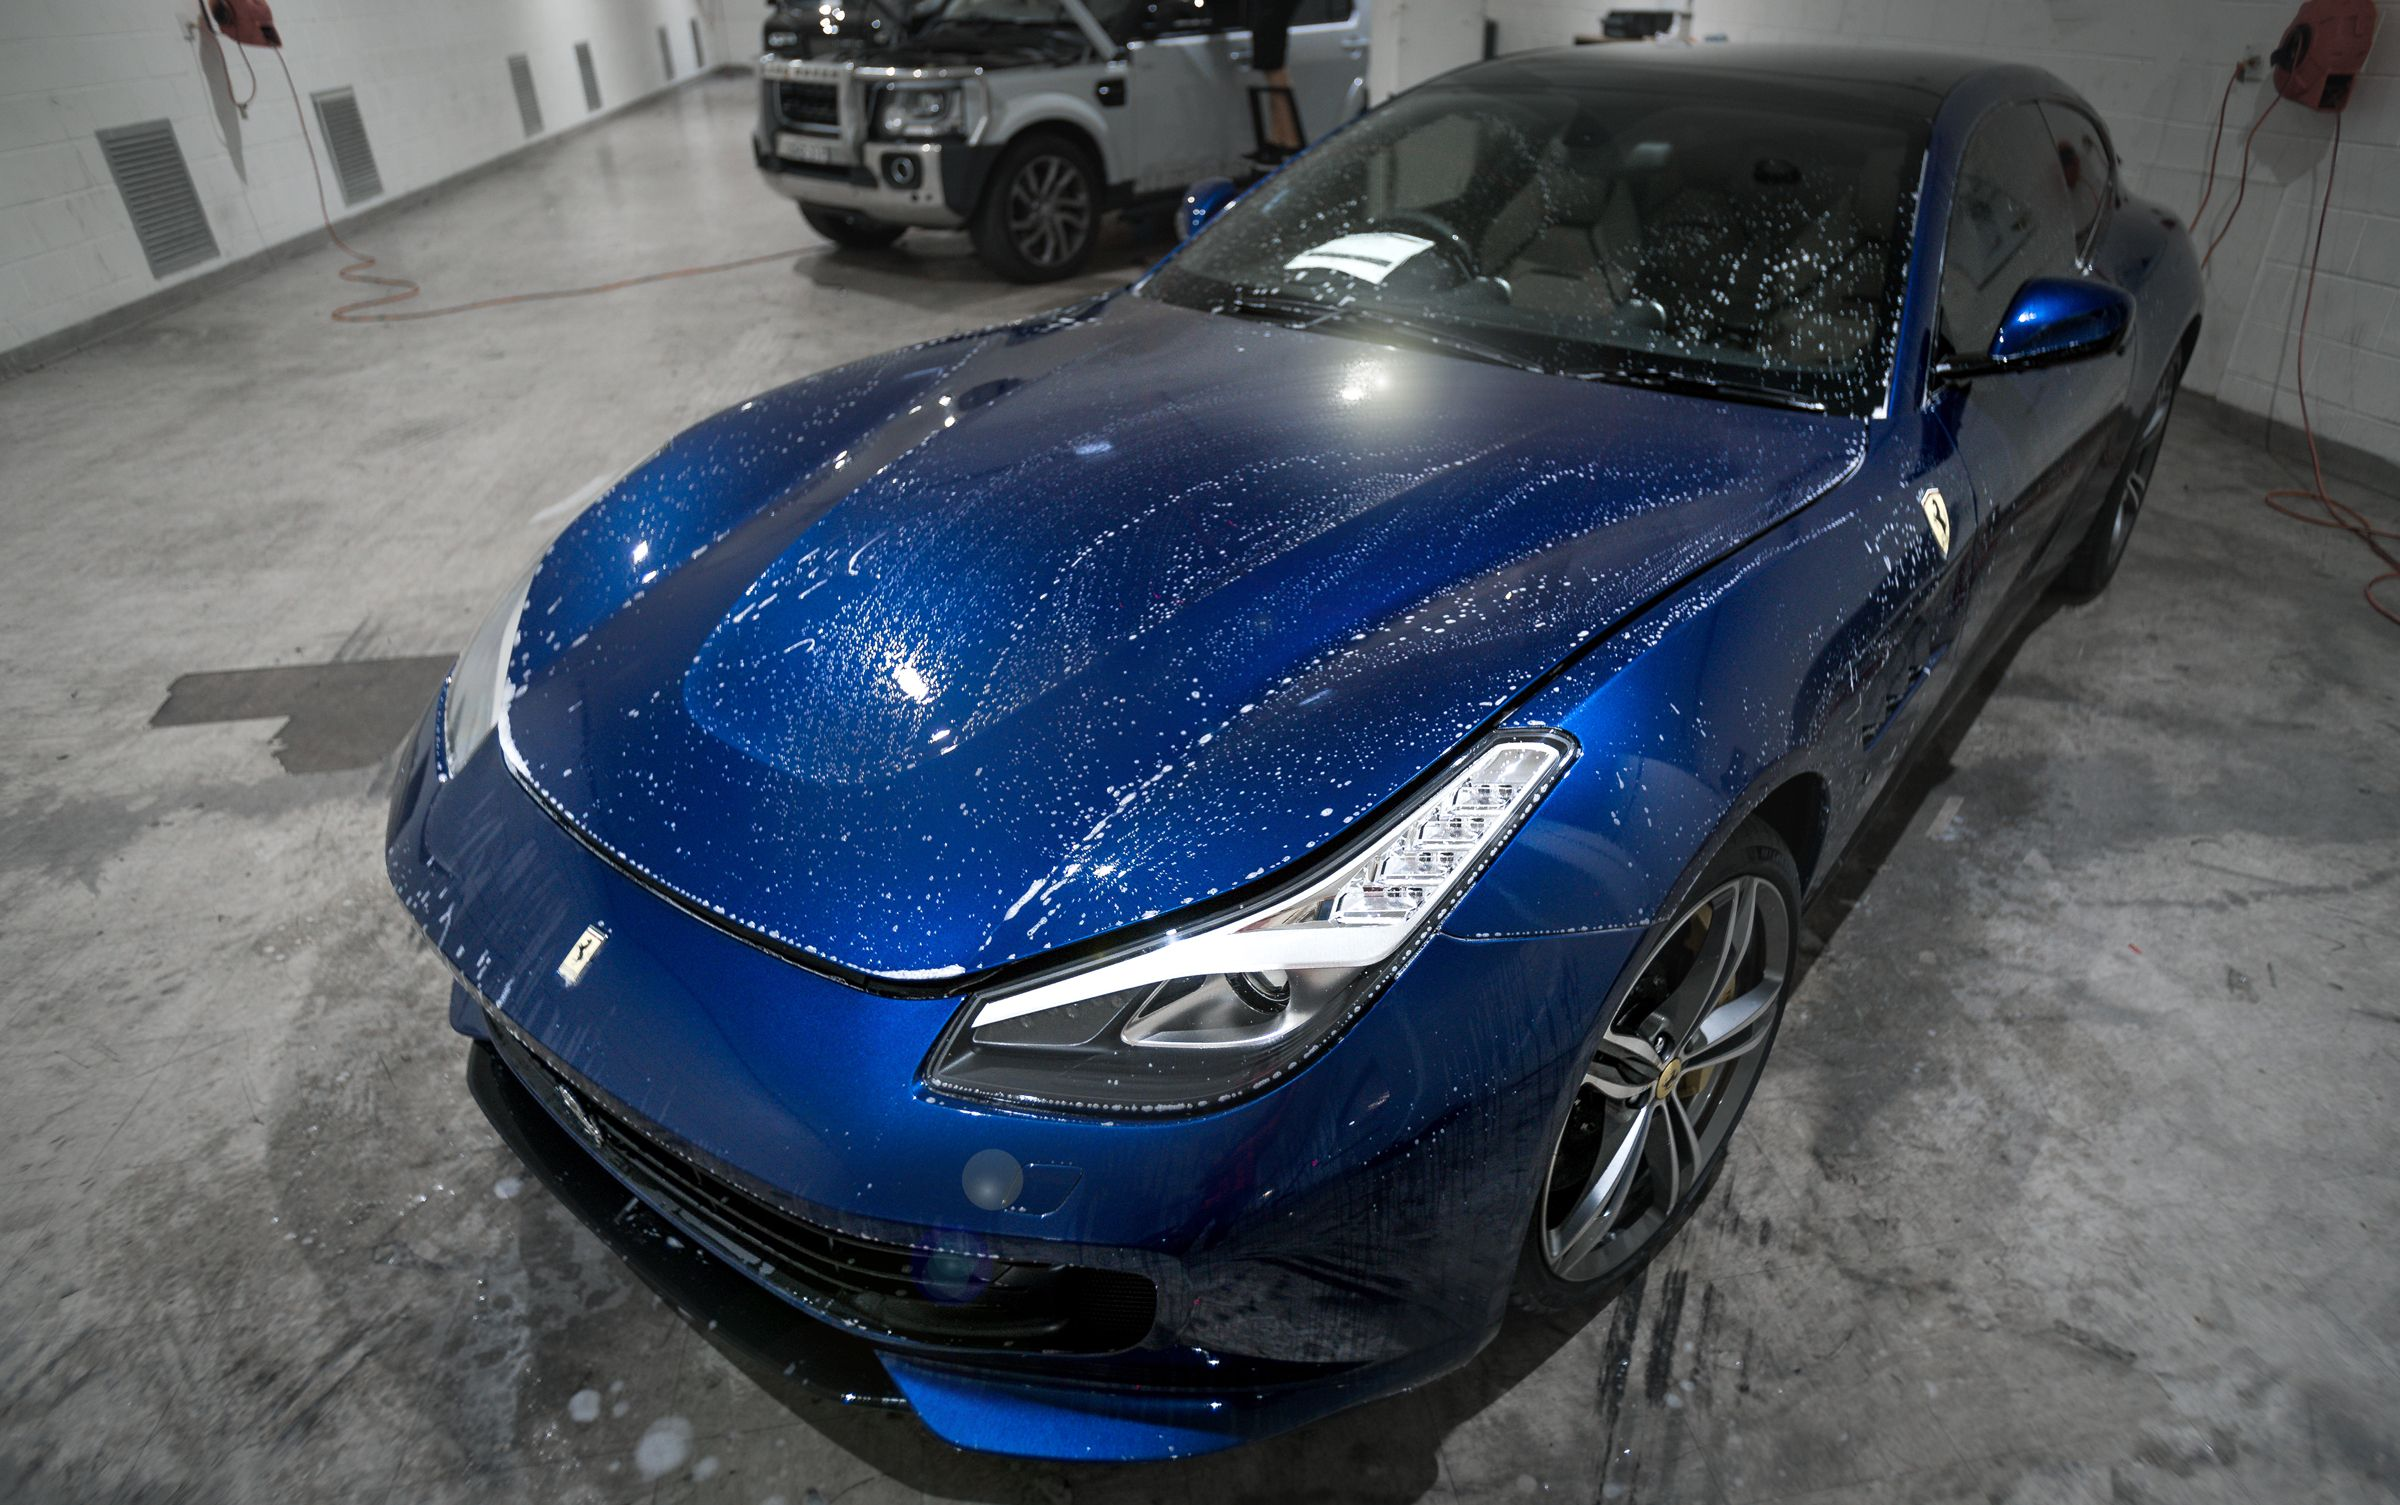 This Metallic Ferrari Ff Came To Us For Vinyl Wrap To Give It A Rare And Unique Look Car Wrap Vinyl Wrap Paint Protection